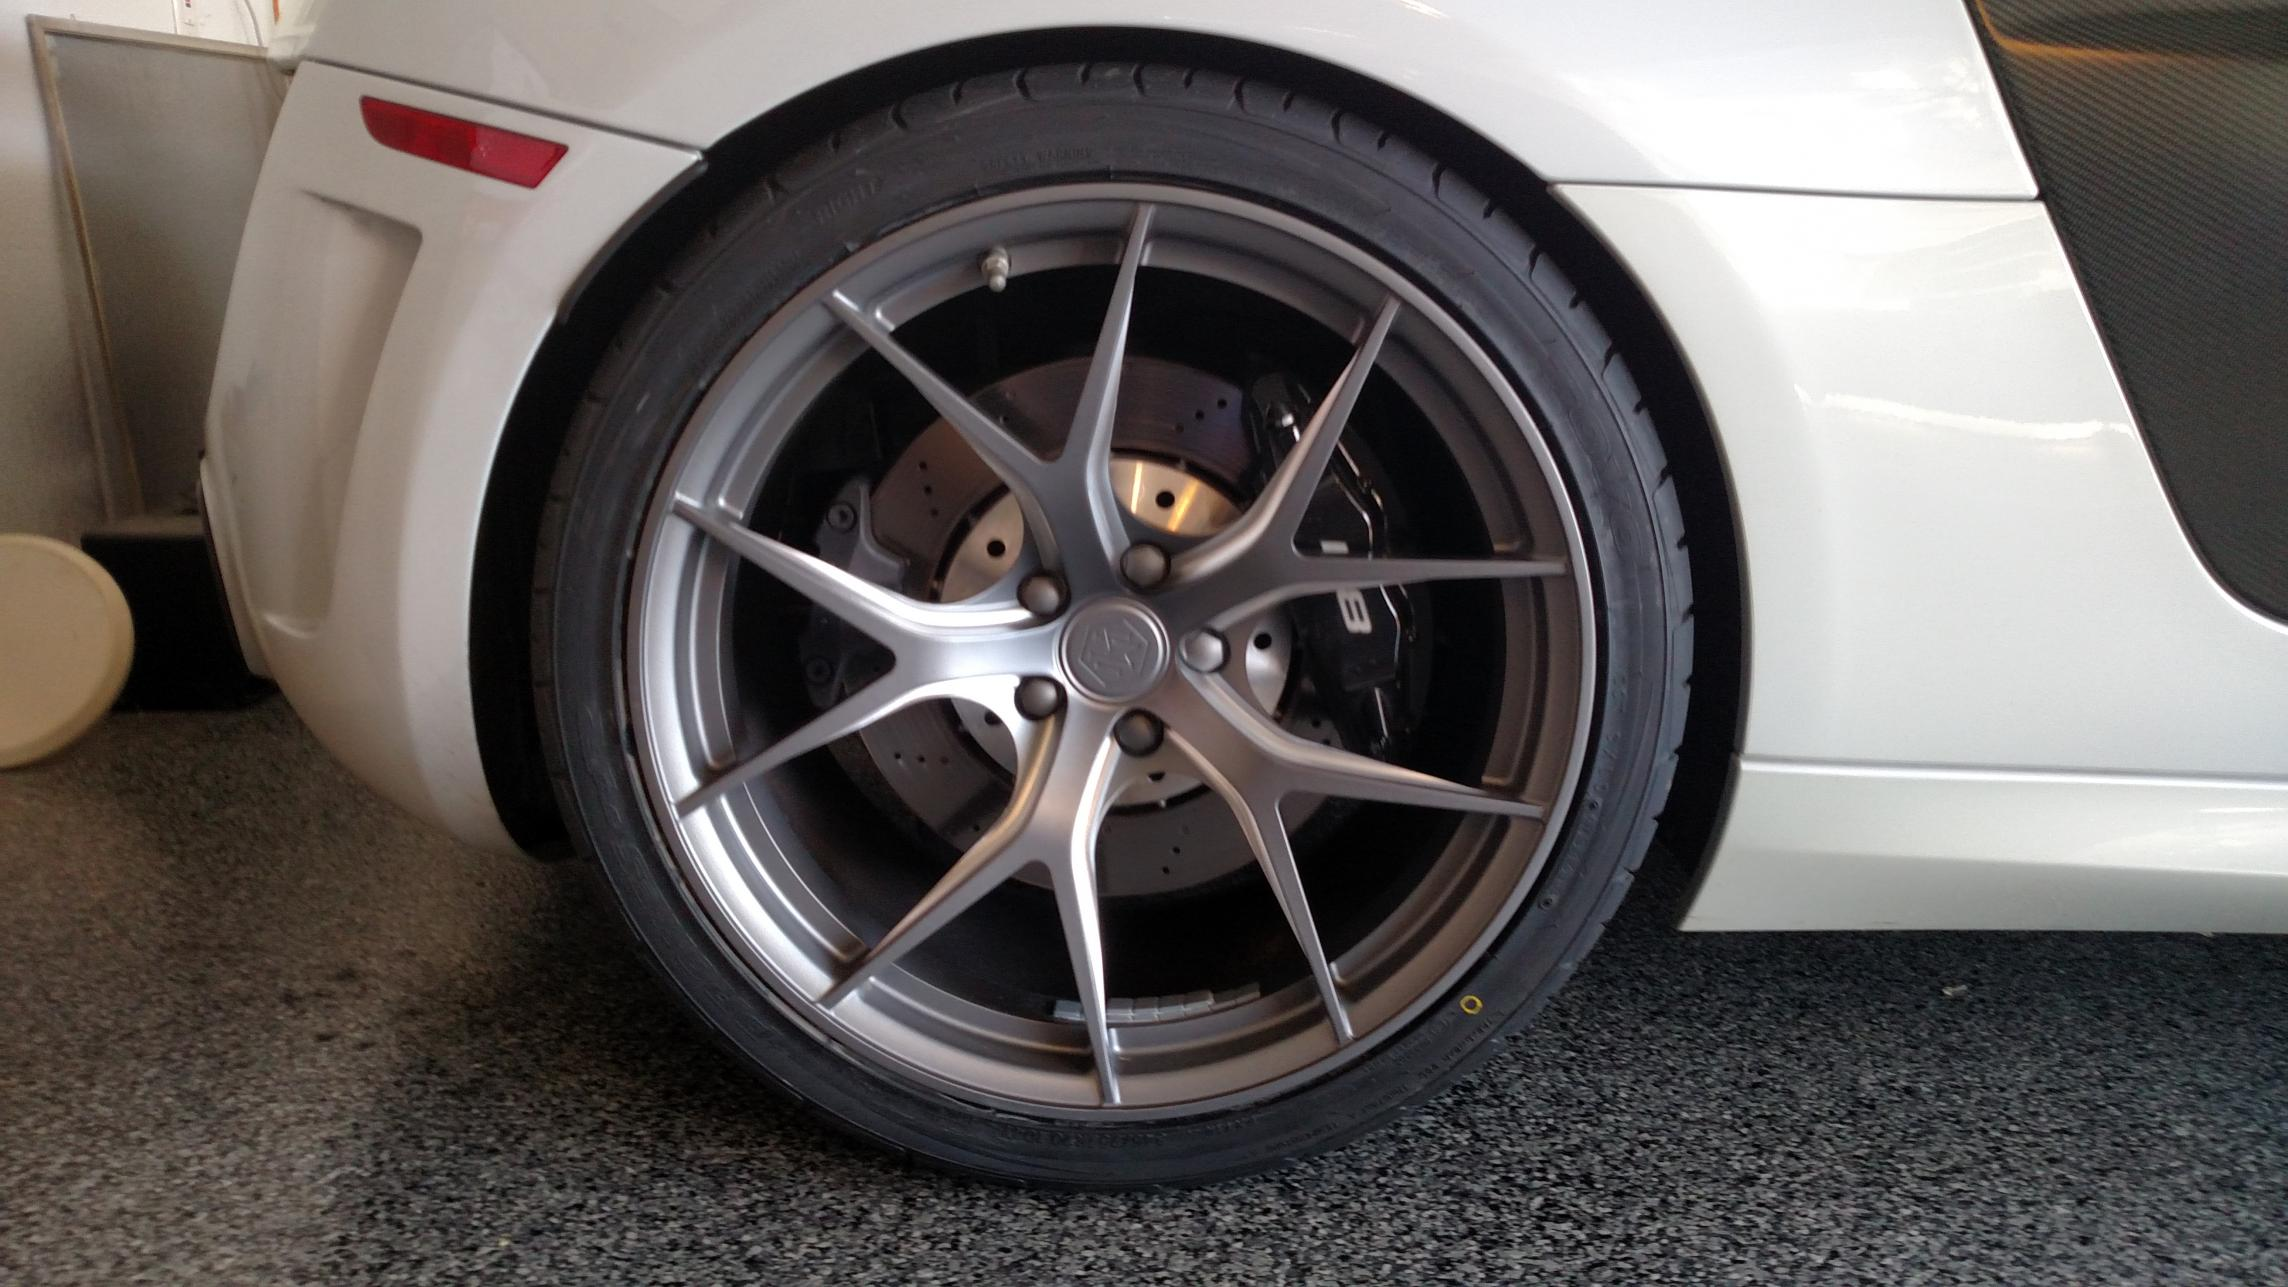 New wheels and tires mounted.-img_20190522_184113656.jpg